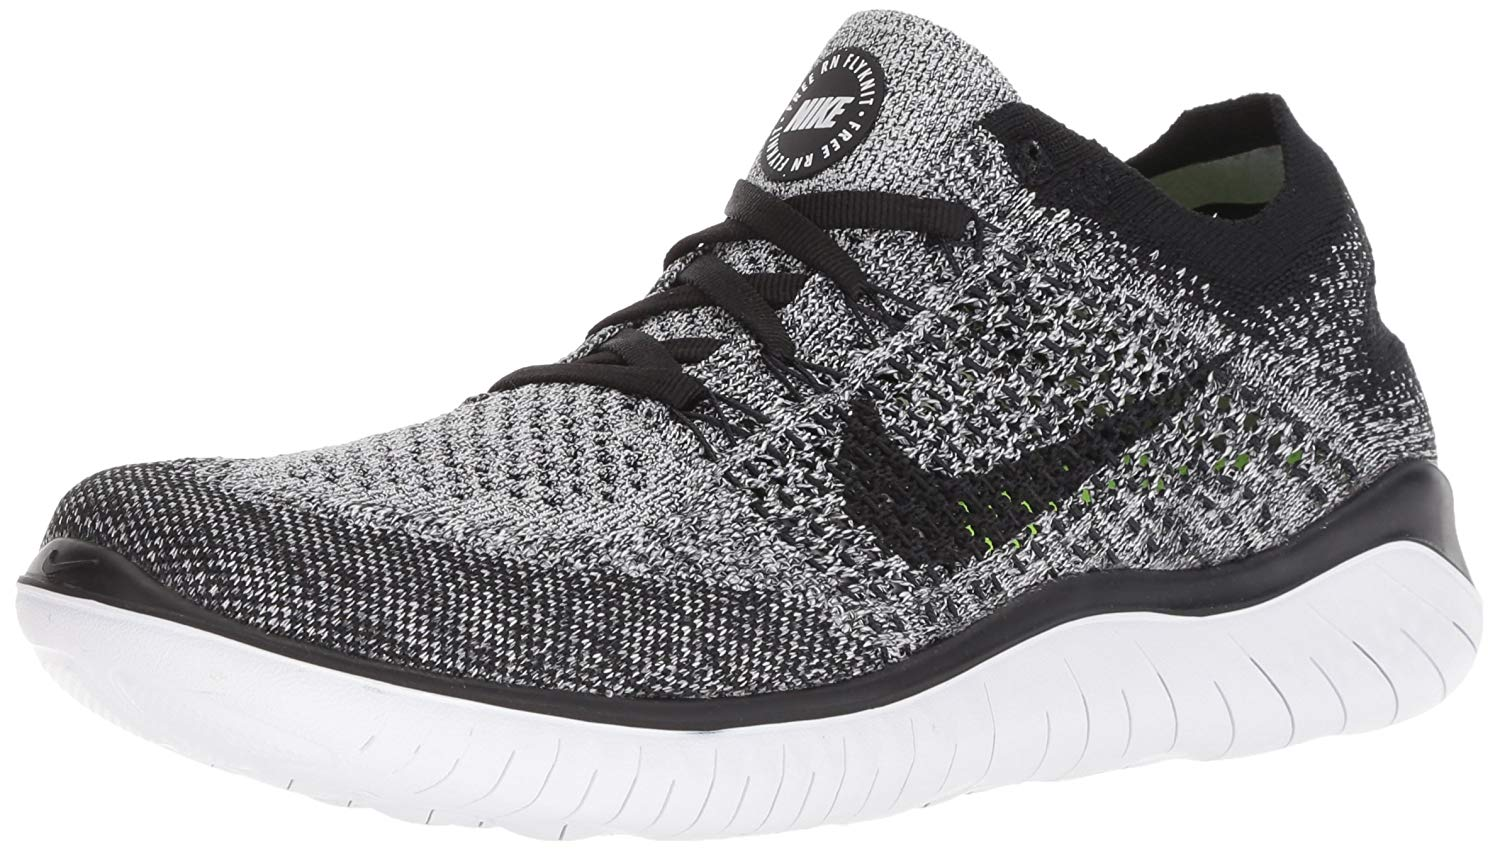 watch b6046 8f232 Nike Womens Free Rn Flyknit 2018 Low Top Lace Up Running, White Black, Size  9.0